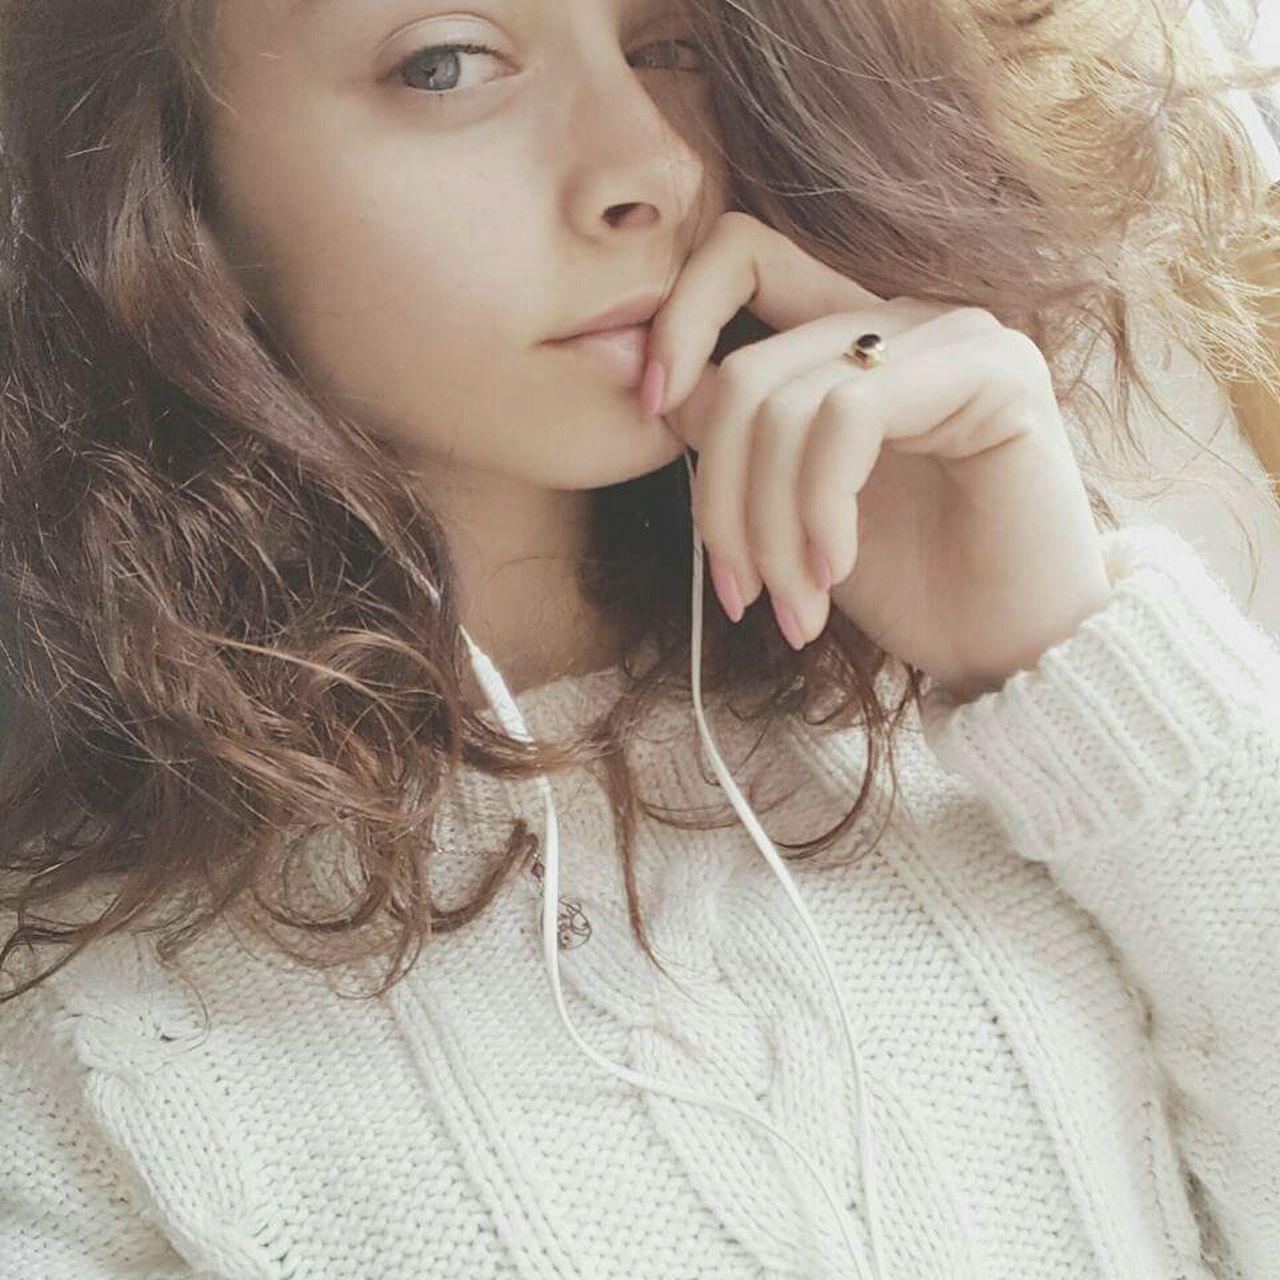 Taking Photos Check This Out Hello World Relaxing Hi! Enjoying Life Blue Eyes That's Me Sweet Girl Dream Girl Snapchat Me Look Into My Eyes... Girl #me #eyes #lips French Girl Selfie Portrait Girls Just Wanna Have Fun :) Phototakenbyme Eyeem France Girl #me Eyes Lips [